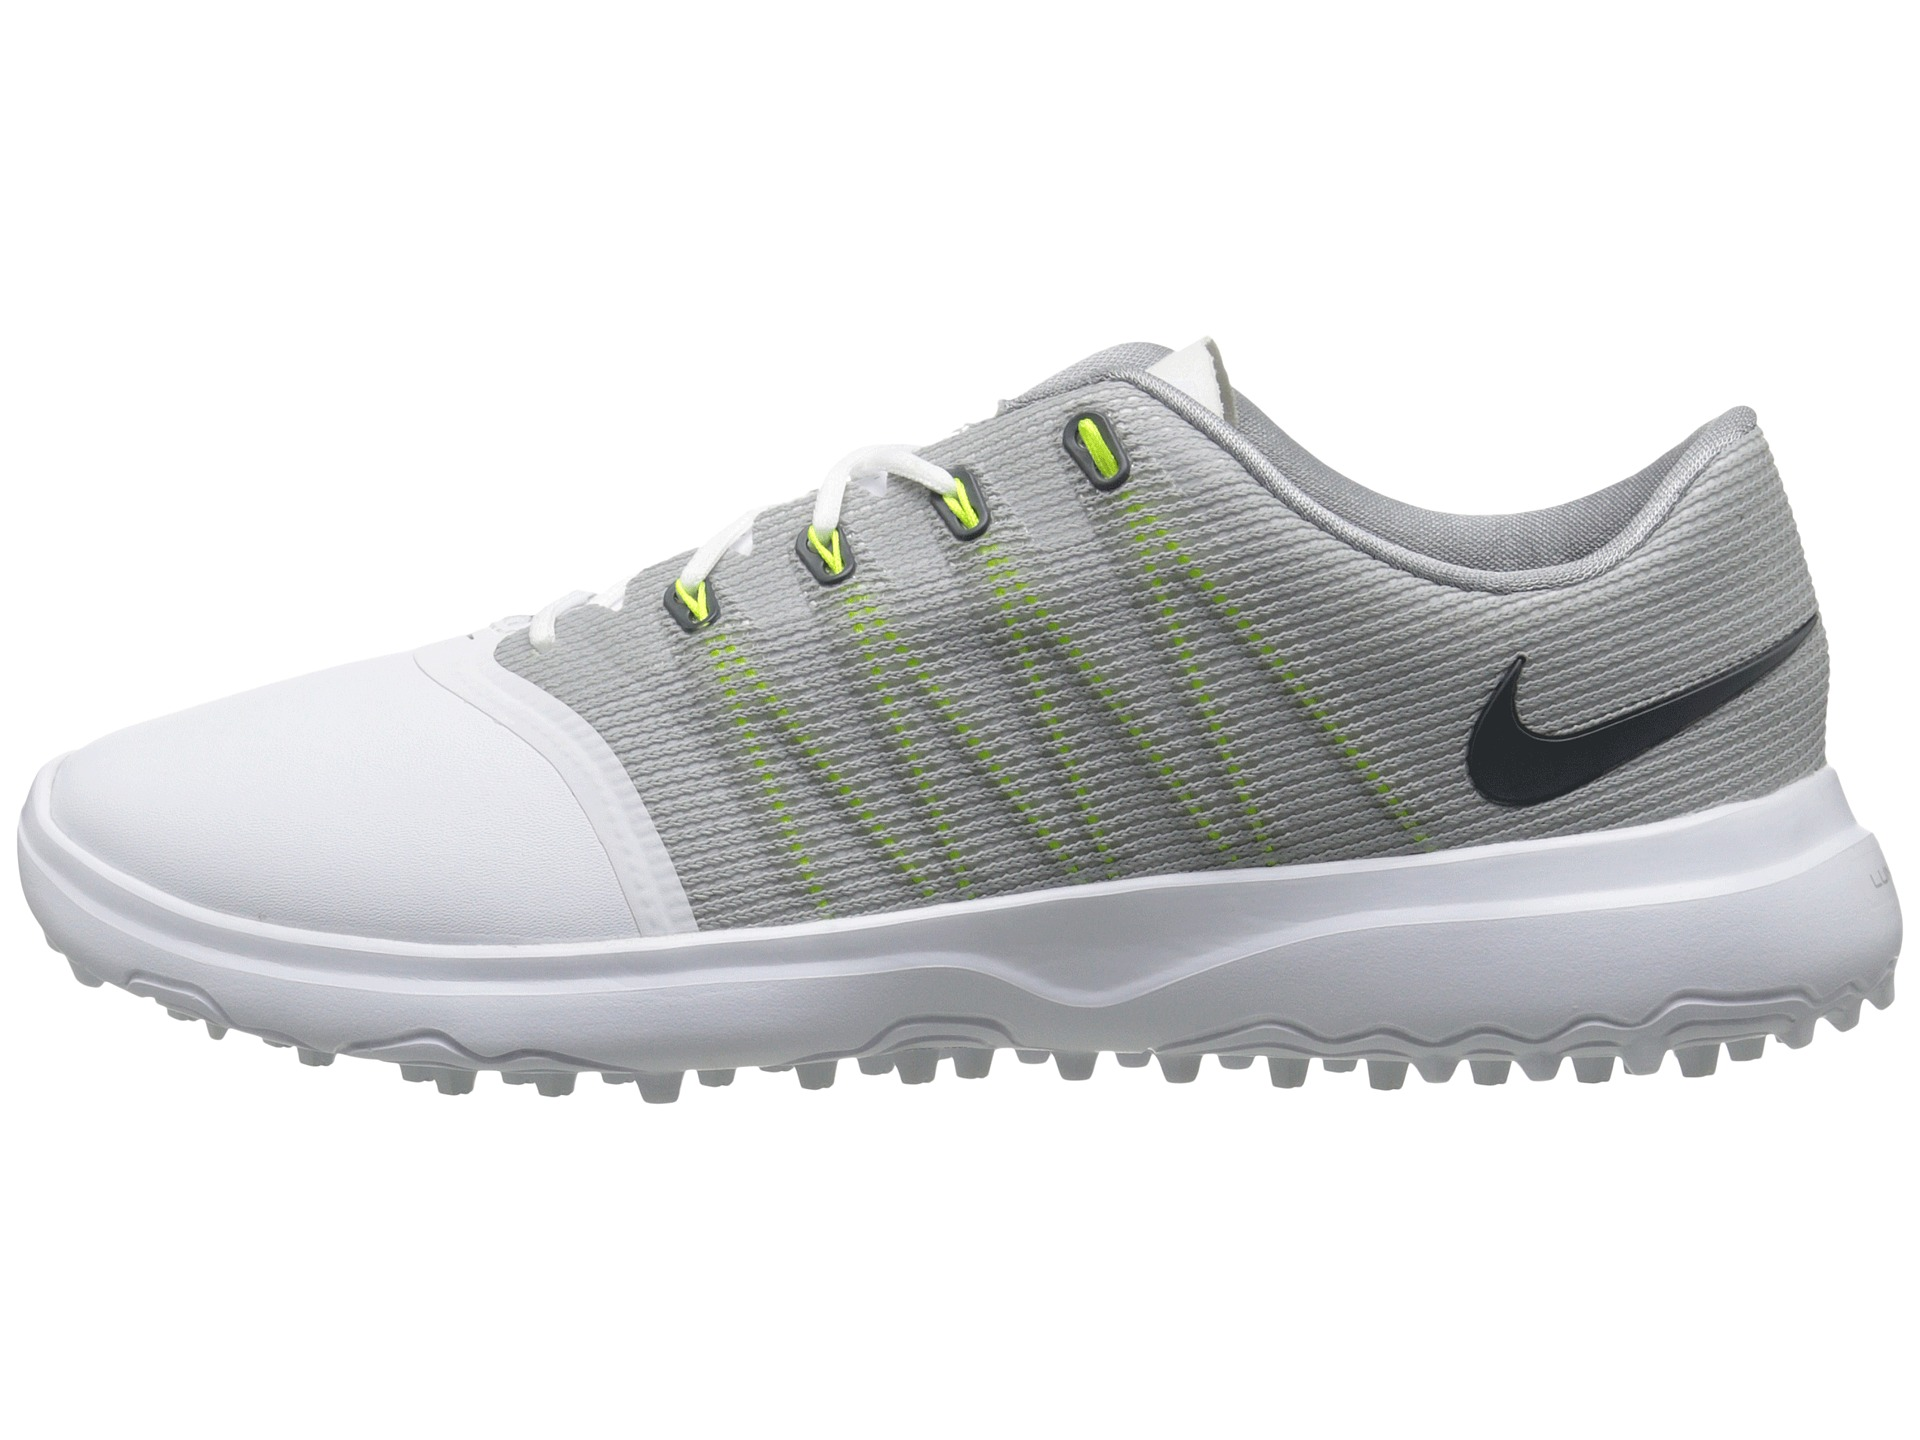 Nike Golf Shoes No Tongue